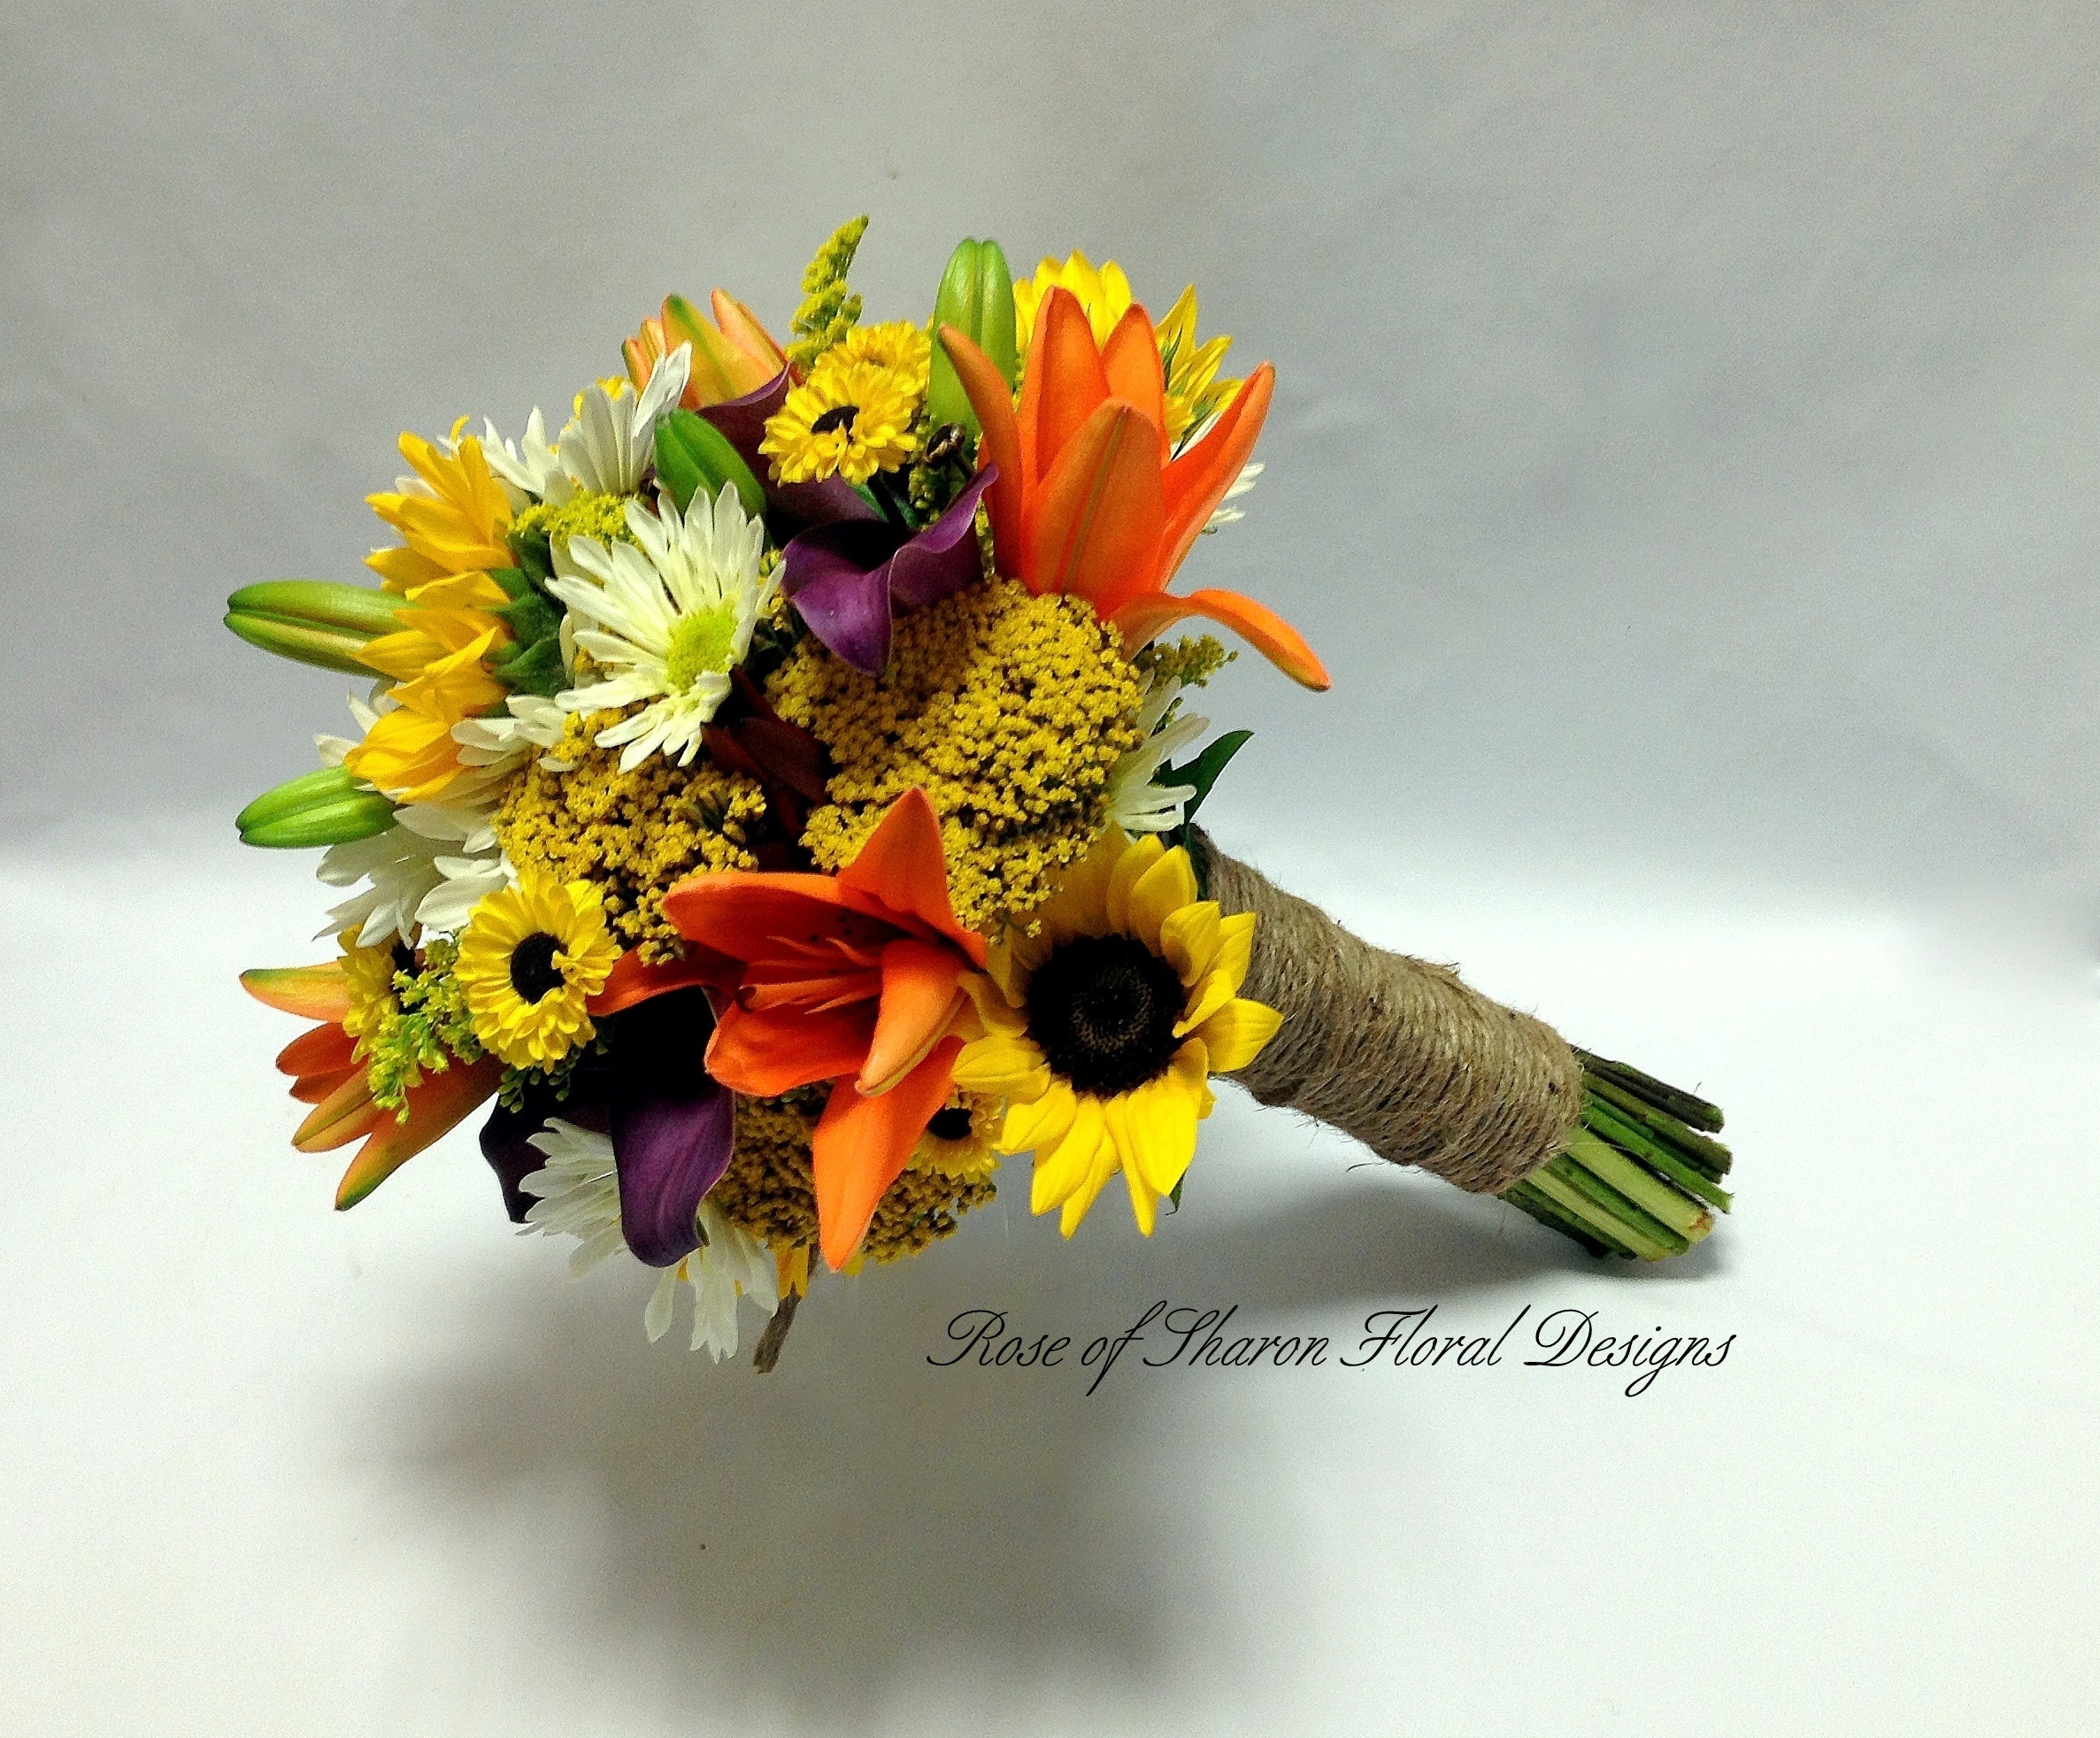 Hand Tied, Lily, Mum and Sunflower Bouquet, Rose of Sharon Floral Designs